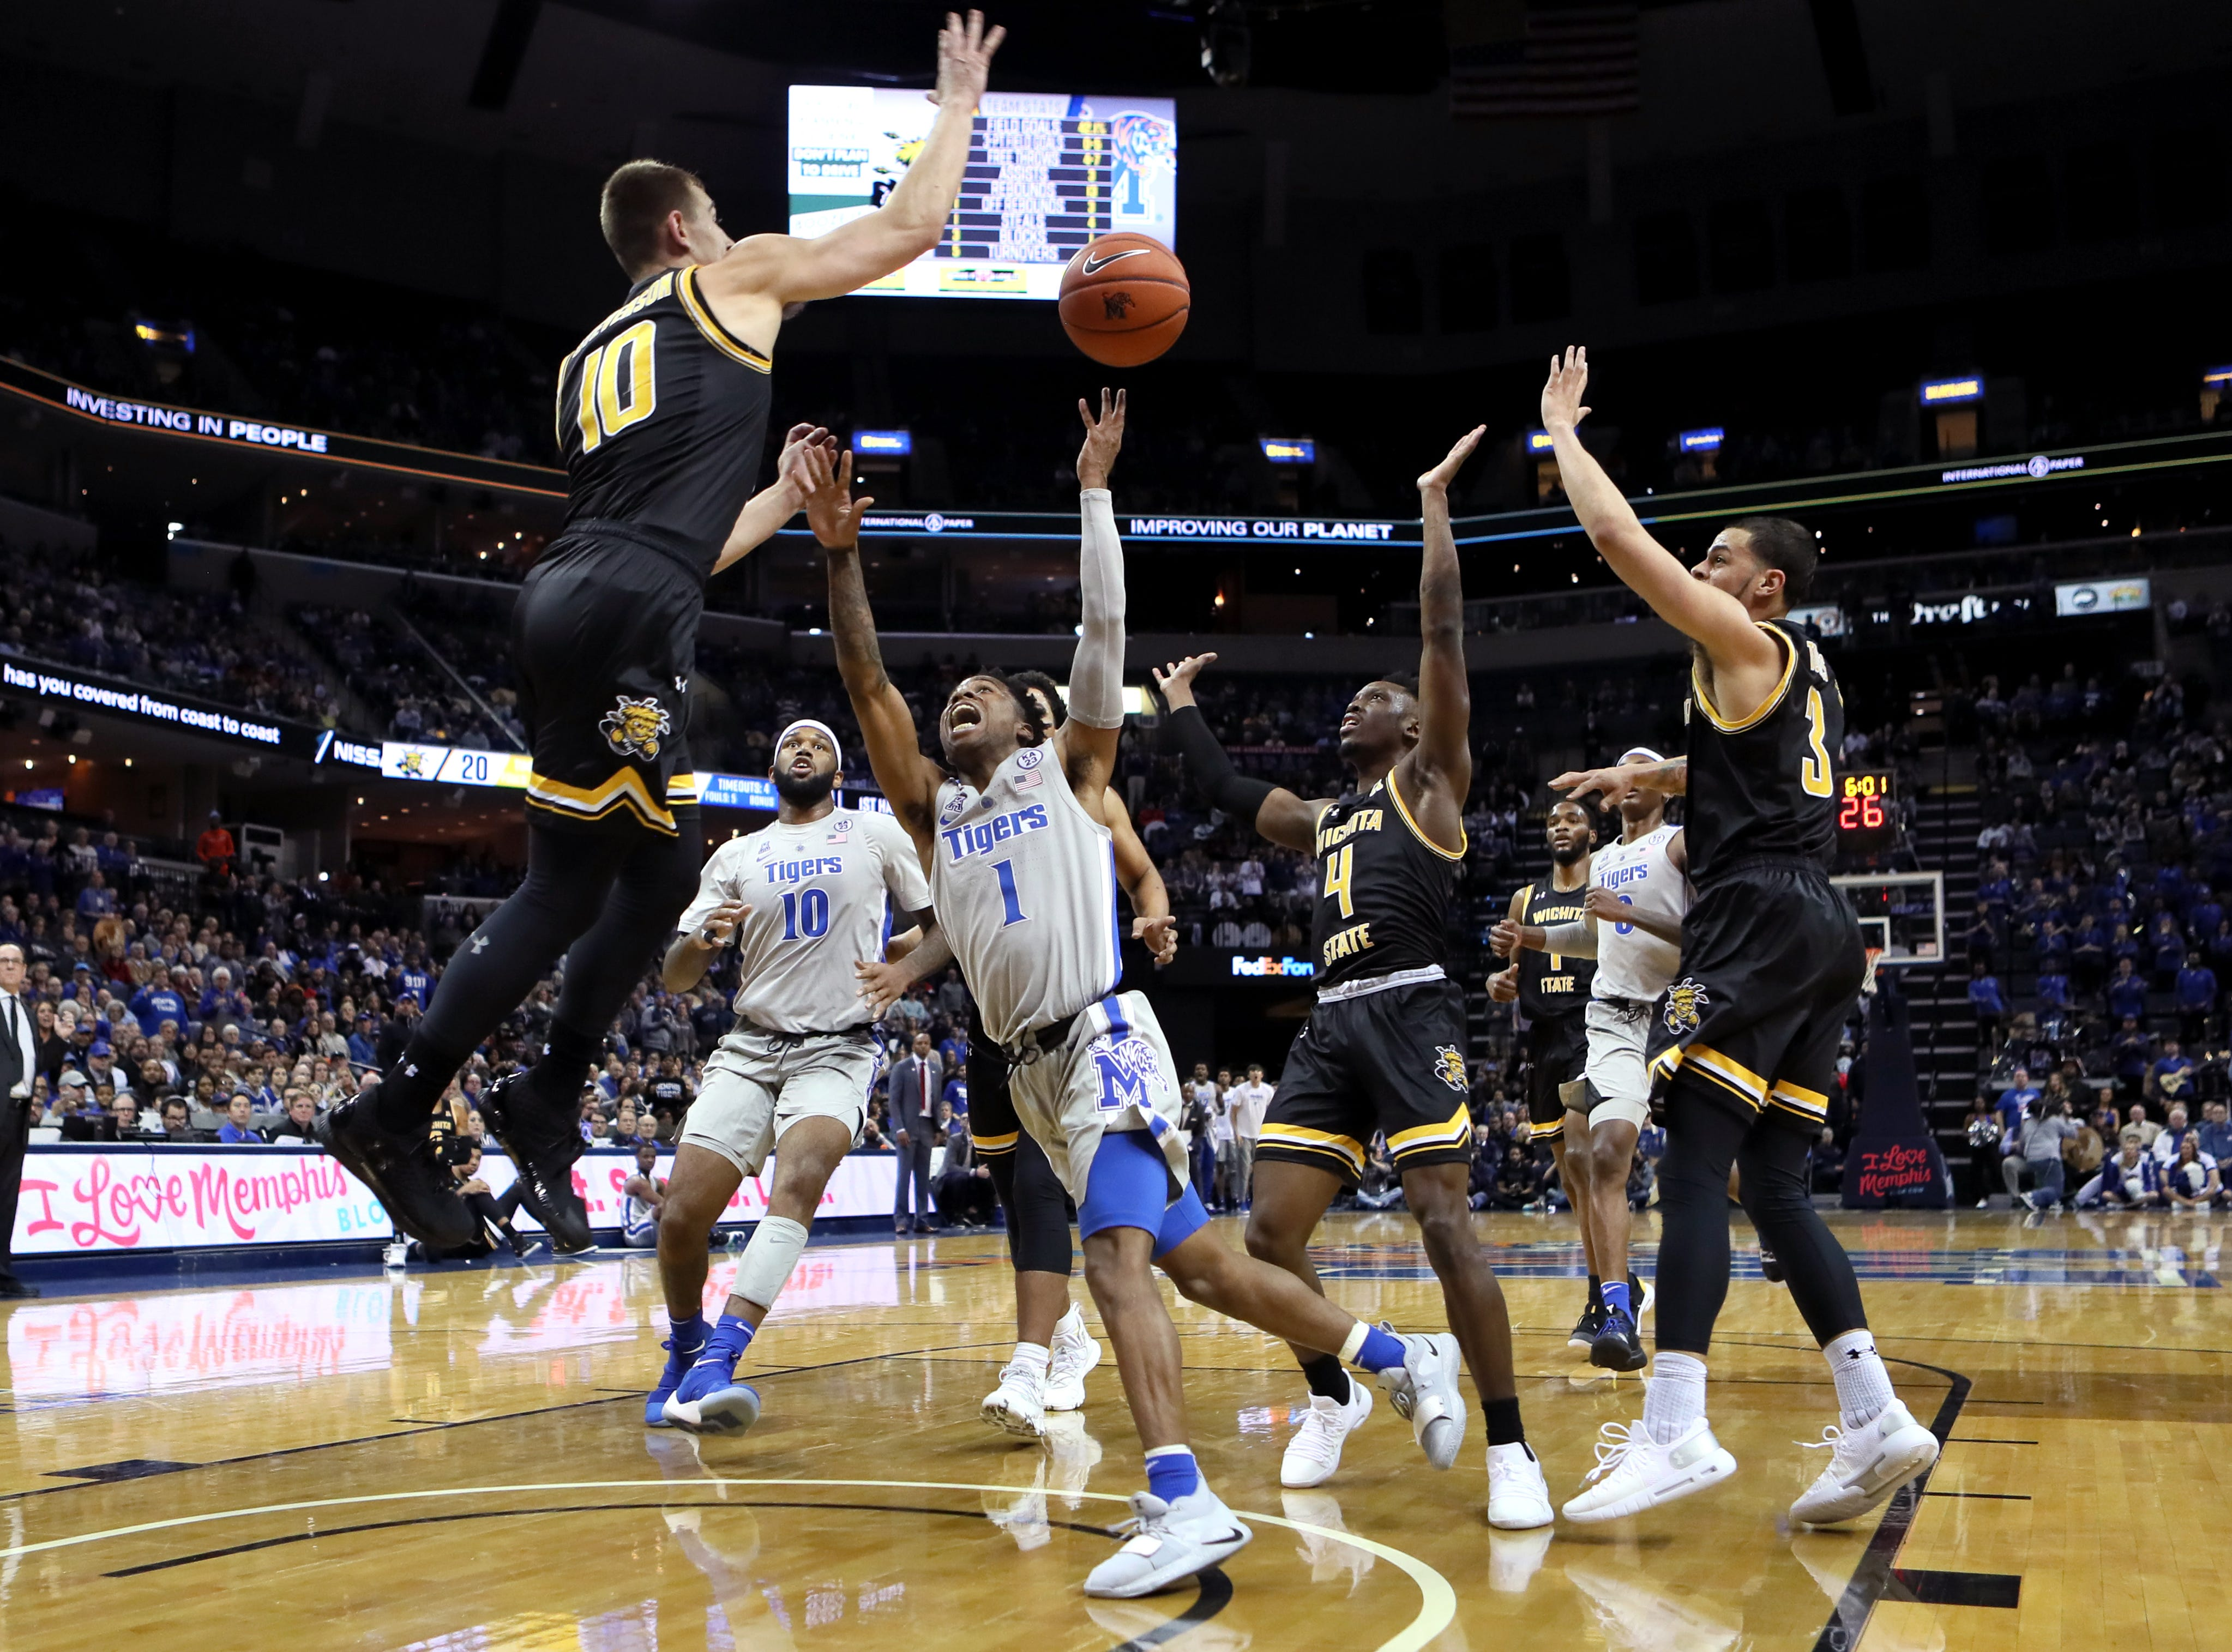 Memphis Tigers guard Tyler Harris is fouled on a drive to the hoop against the Wichita State Shockers during their game at the FedExForum on Thursday, Jan. 3, 2019.